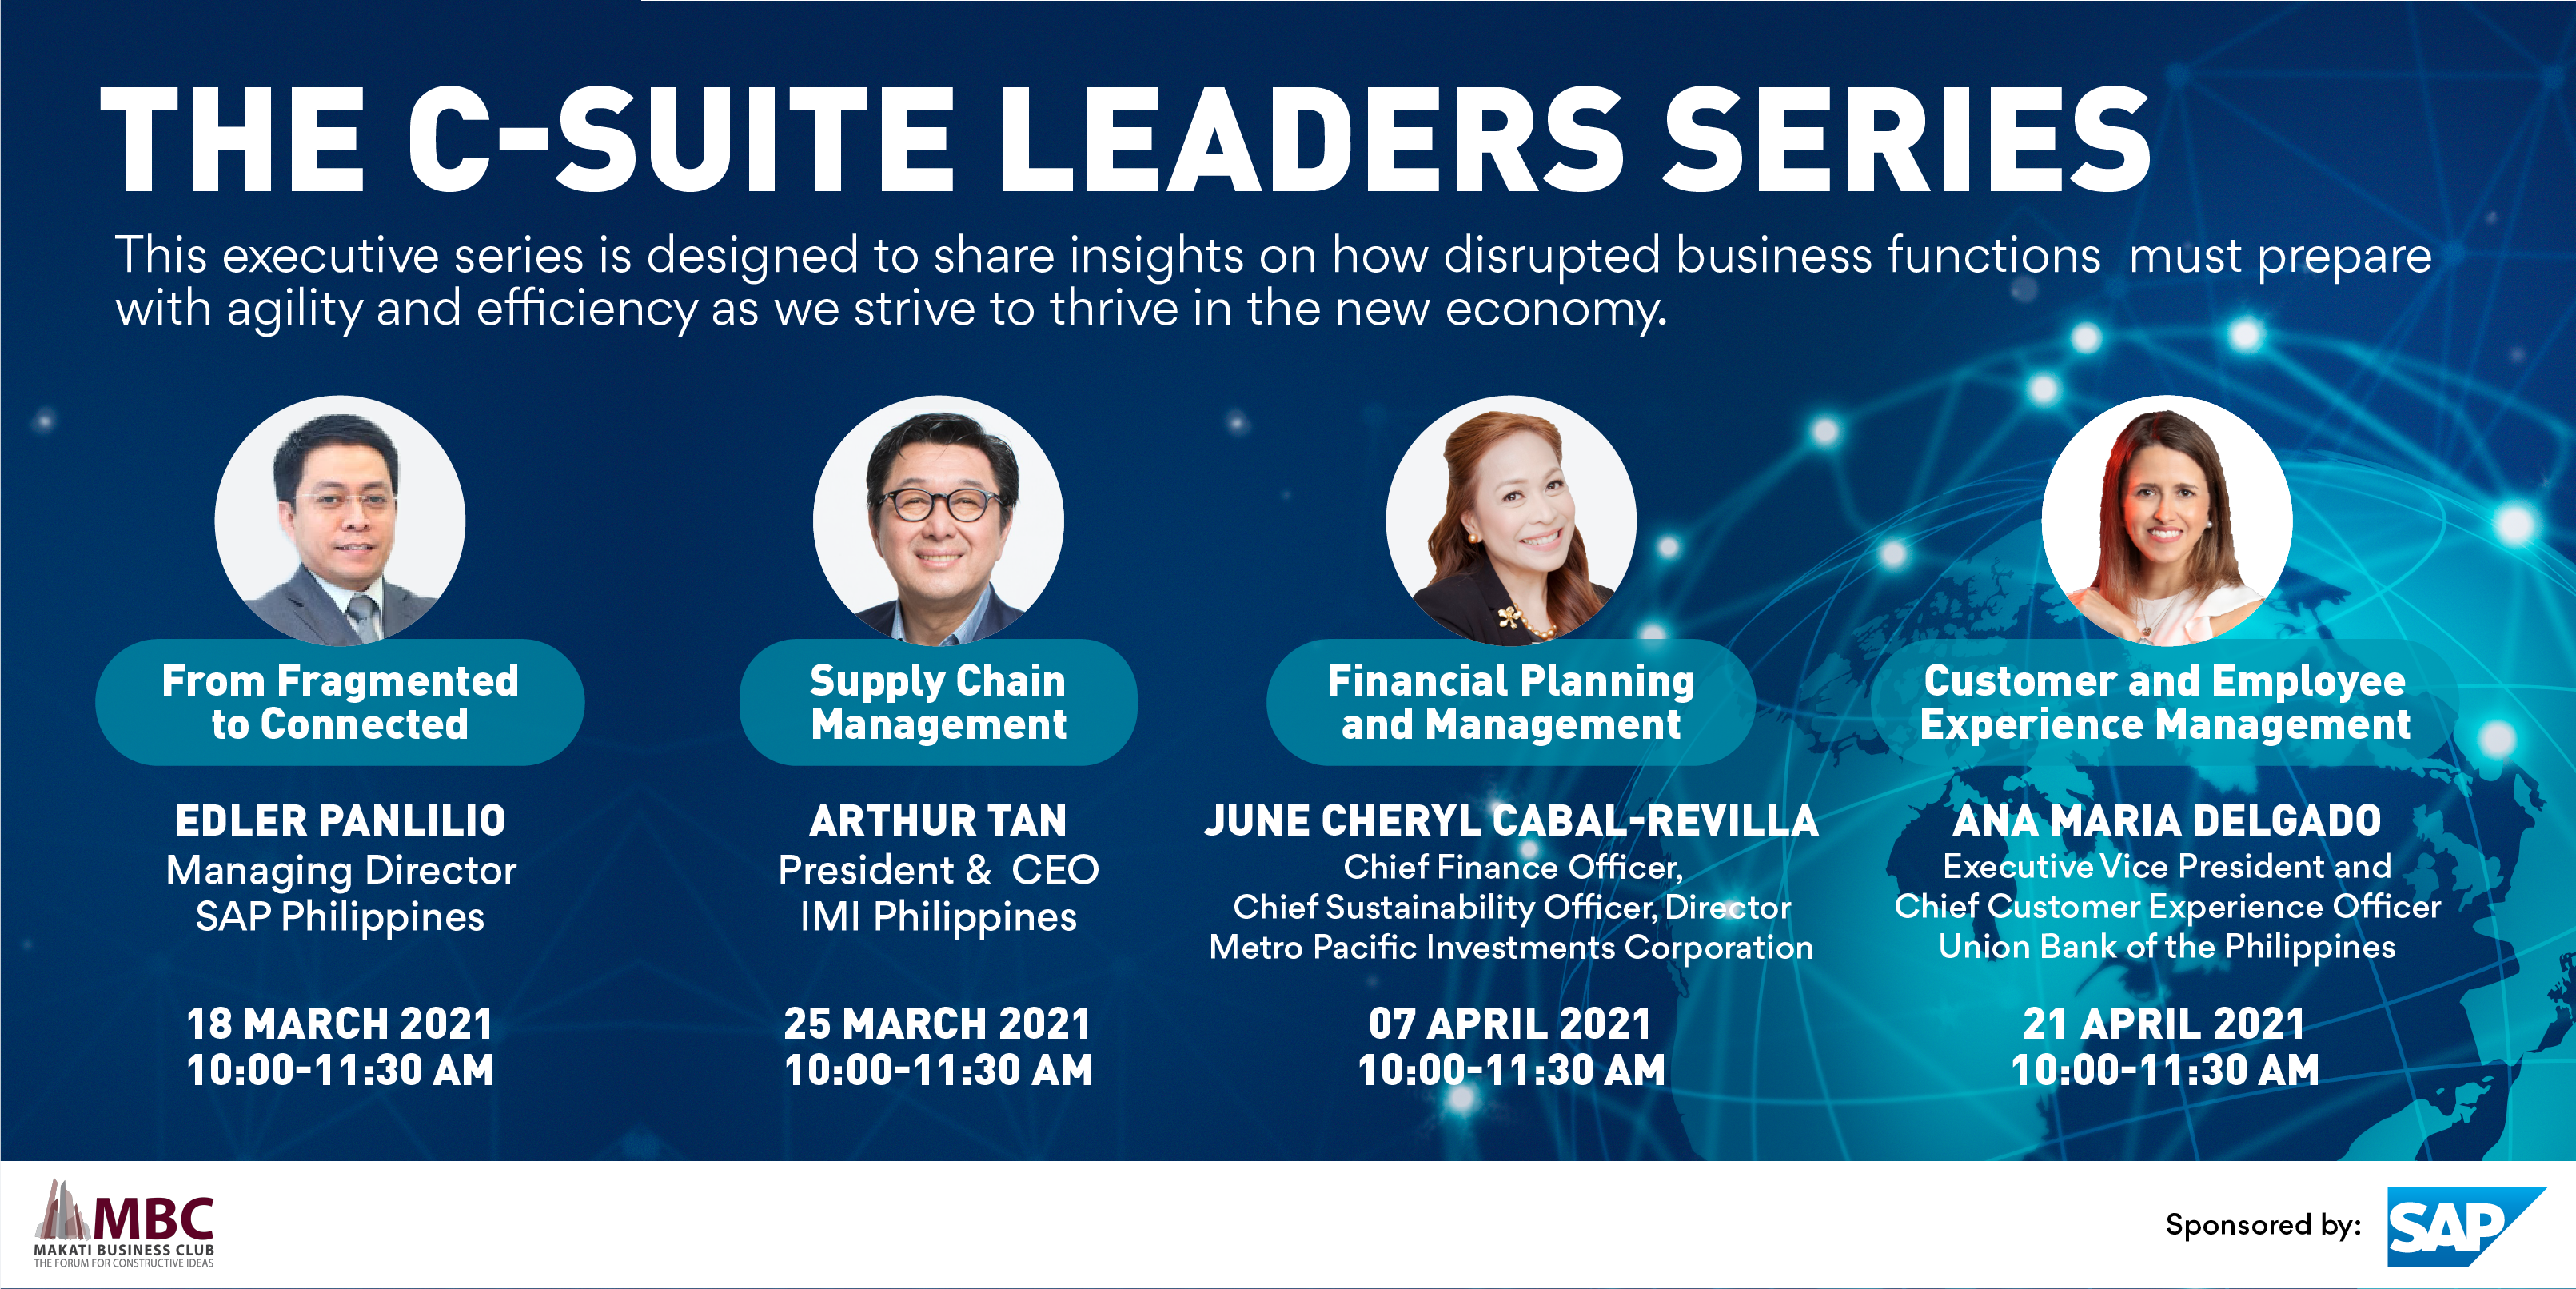 THE C-SUITE LEADERS SERIES